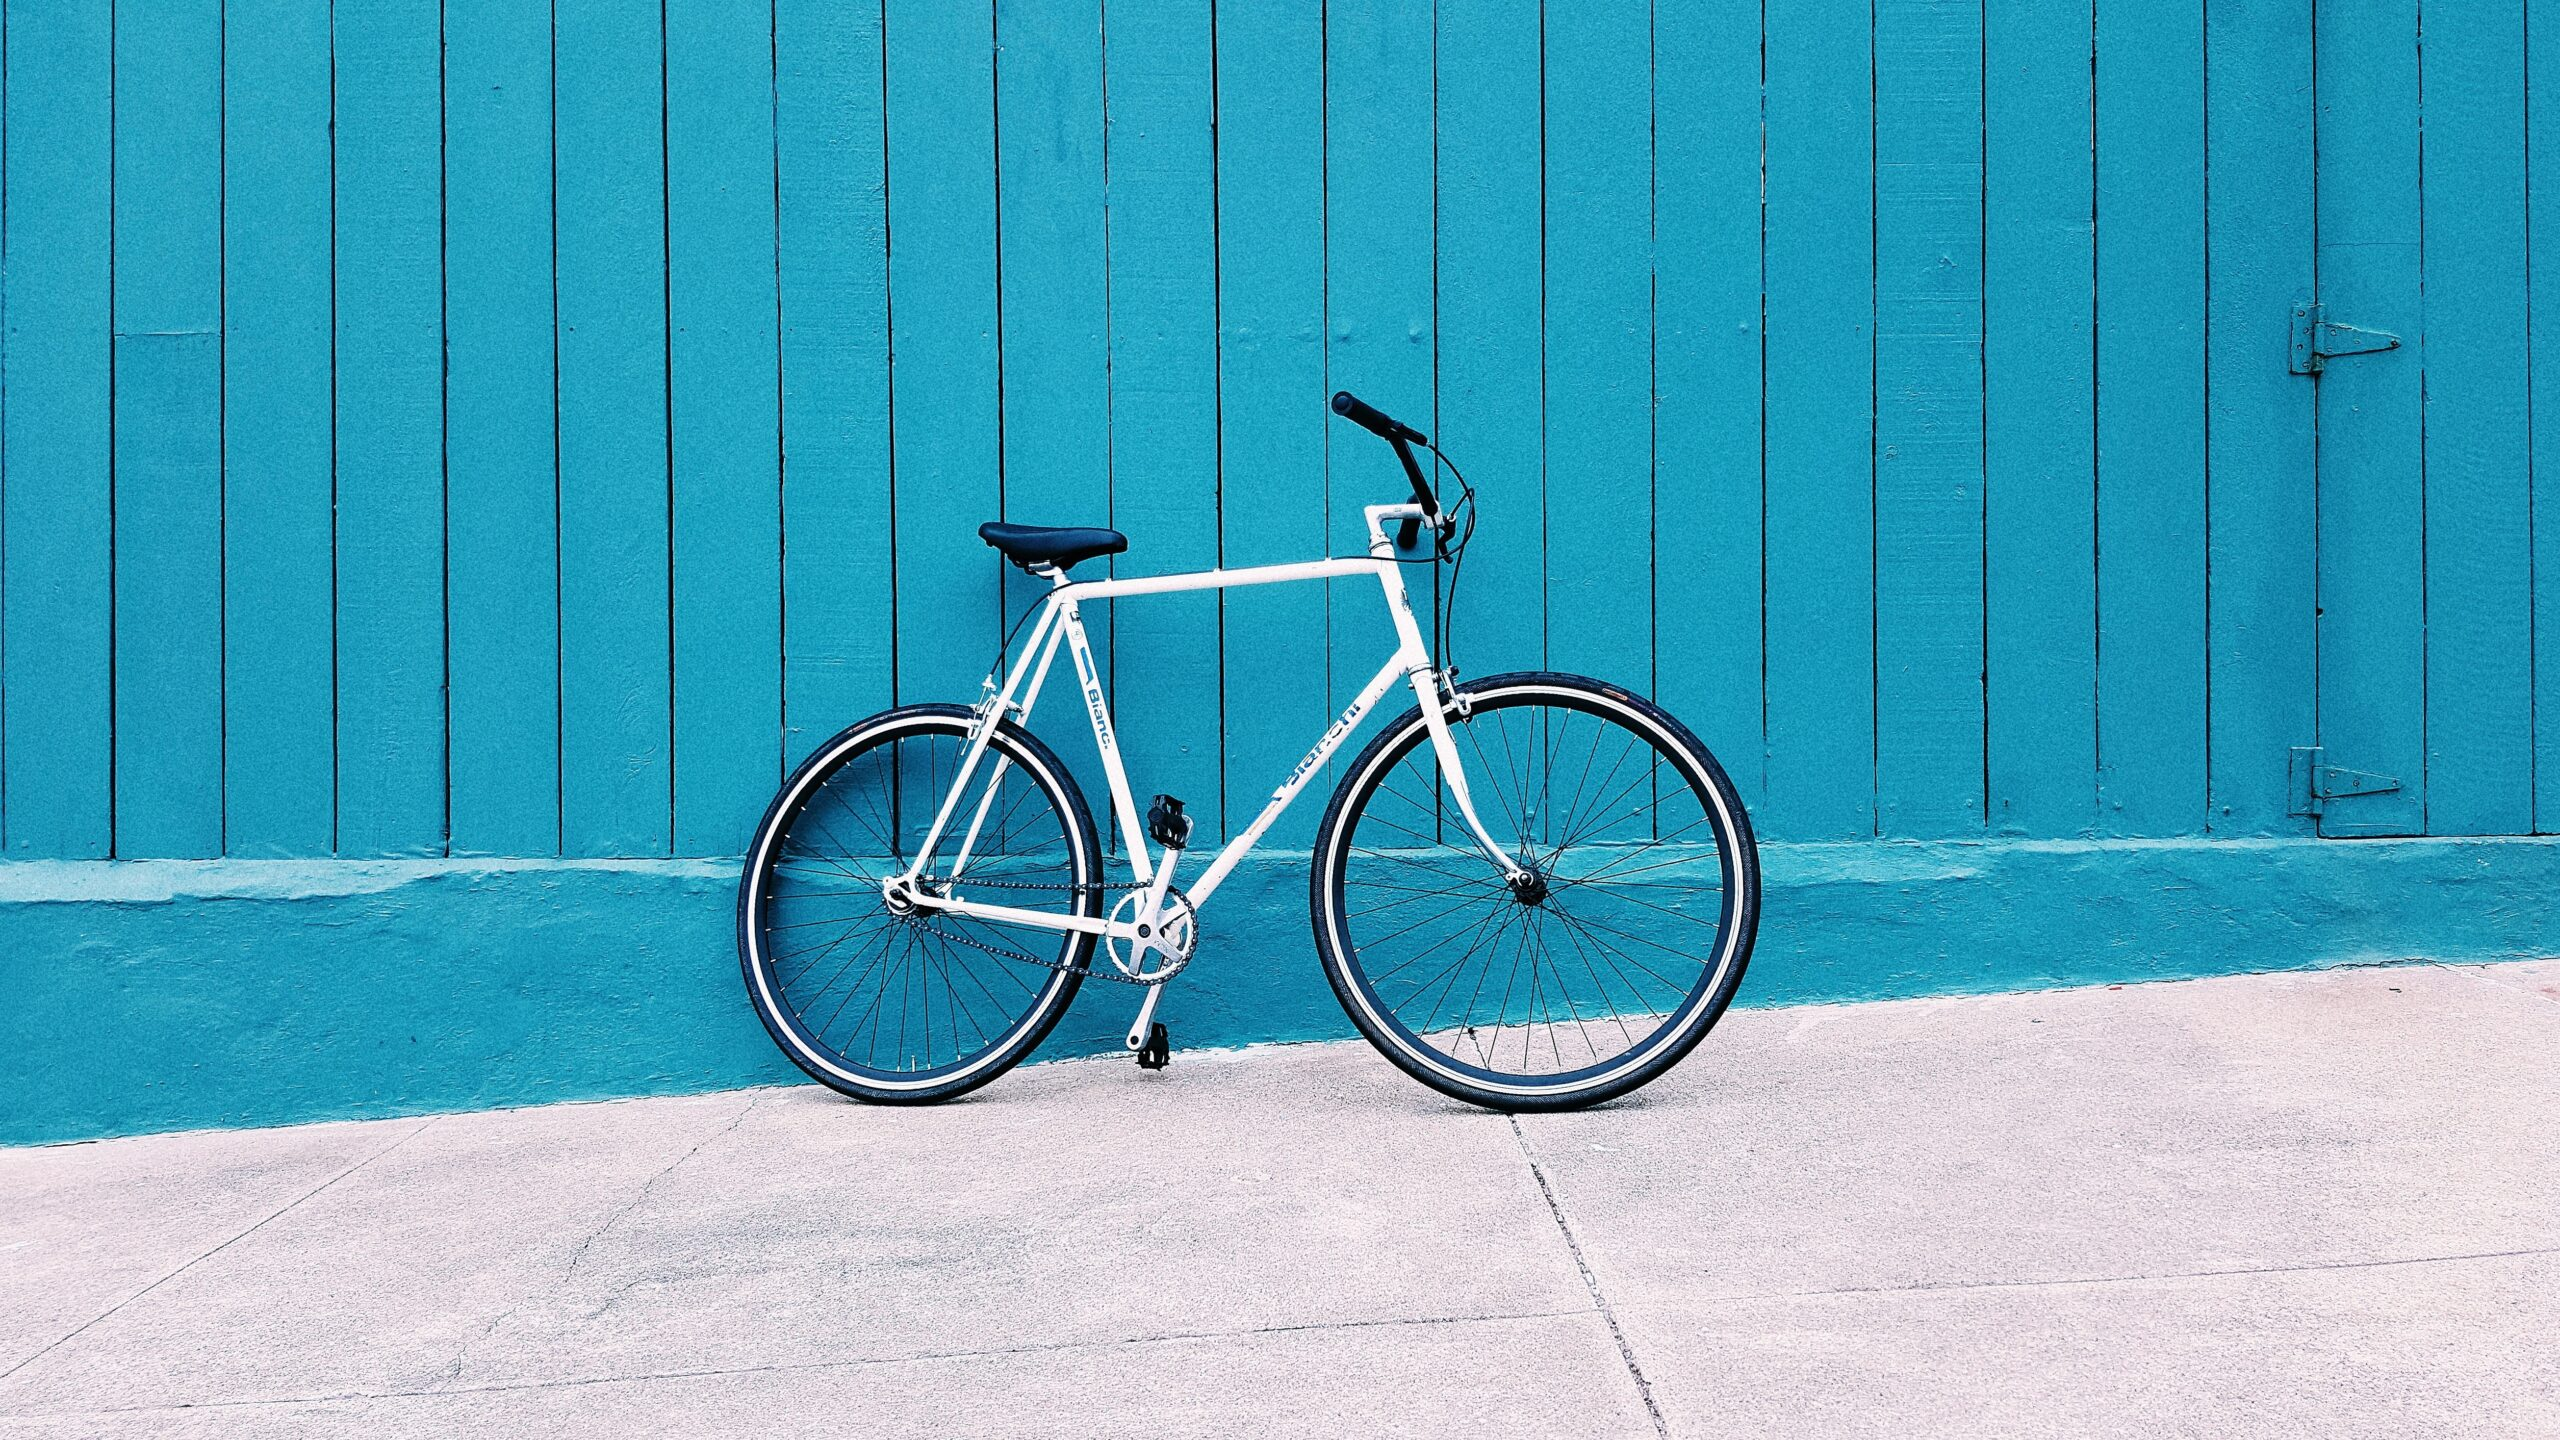 white road bike leaning on teal wooden wall during daytime